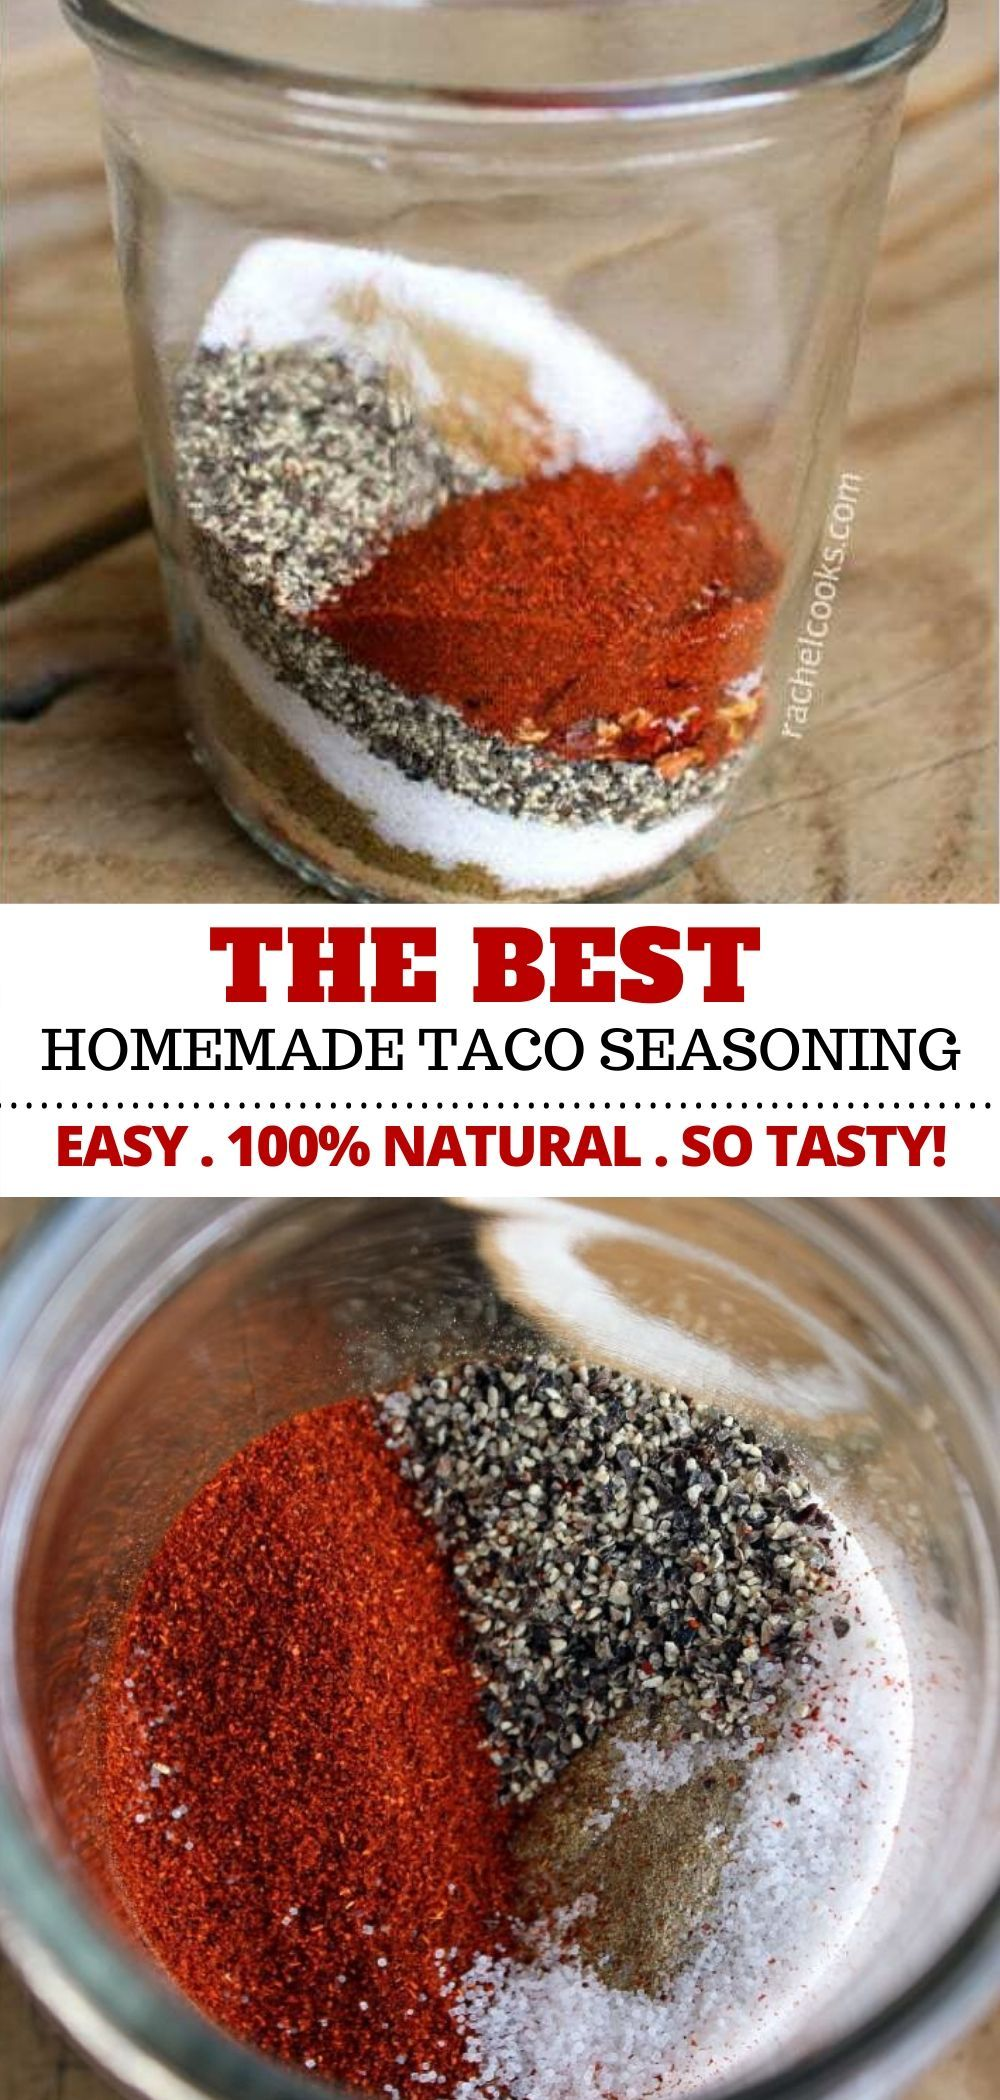 Taco Seasoning Recipe - Ditch the Packet for GOOD! - with VIDEO